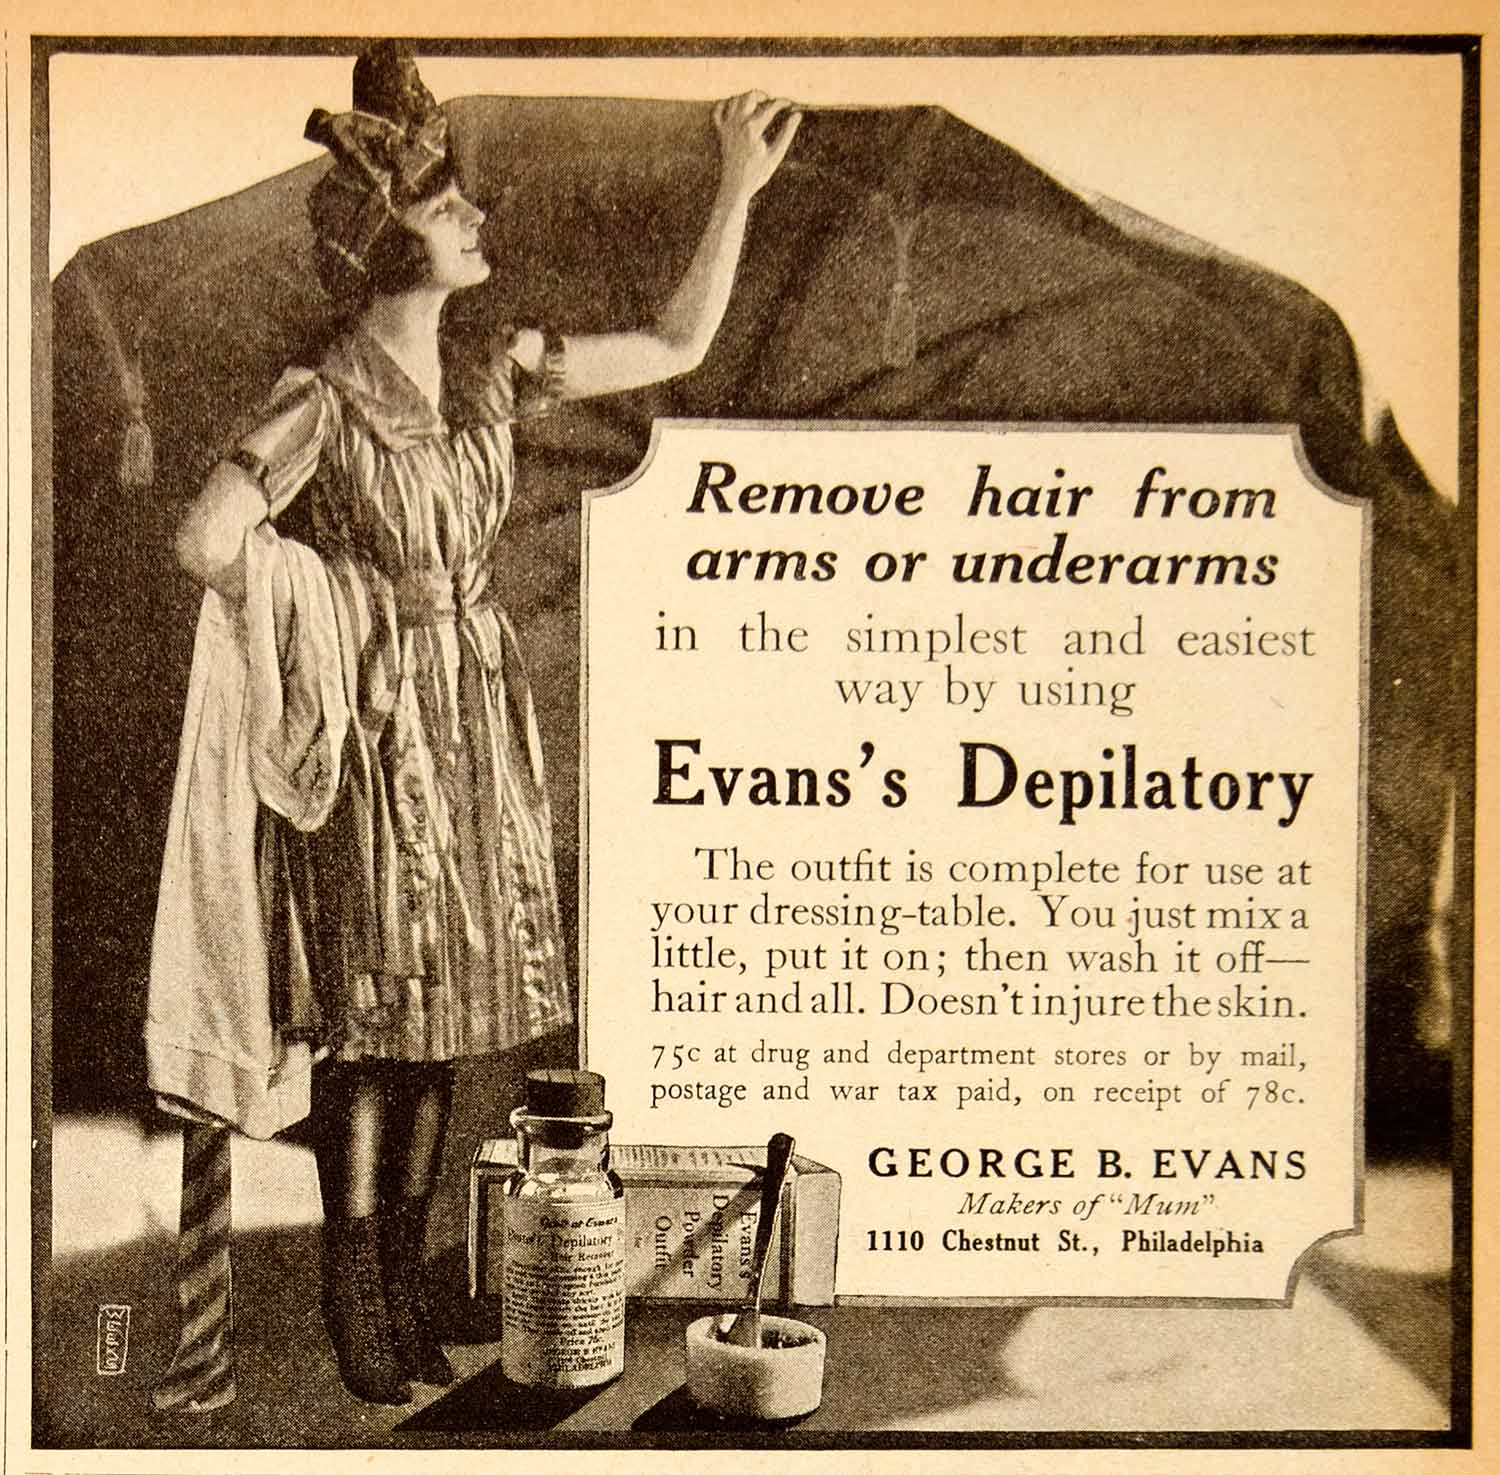 1919 Ad George Evans Depilatory Hair Removal Women Beauty Portrait Fashion MPC1